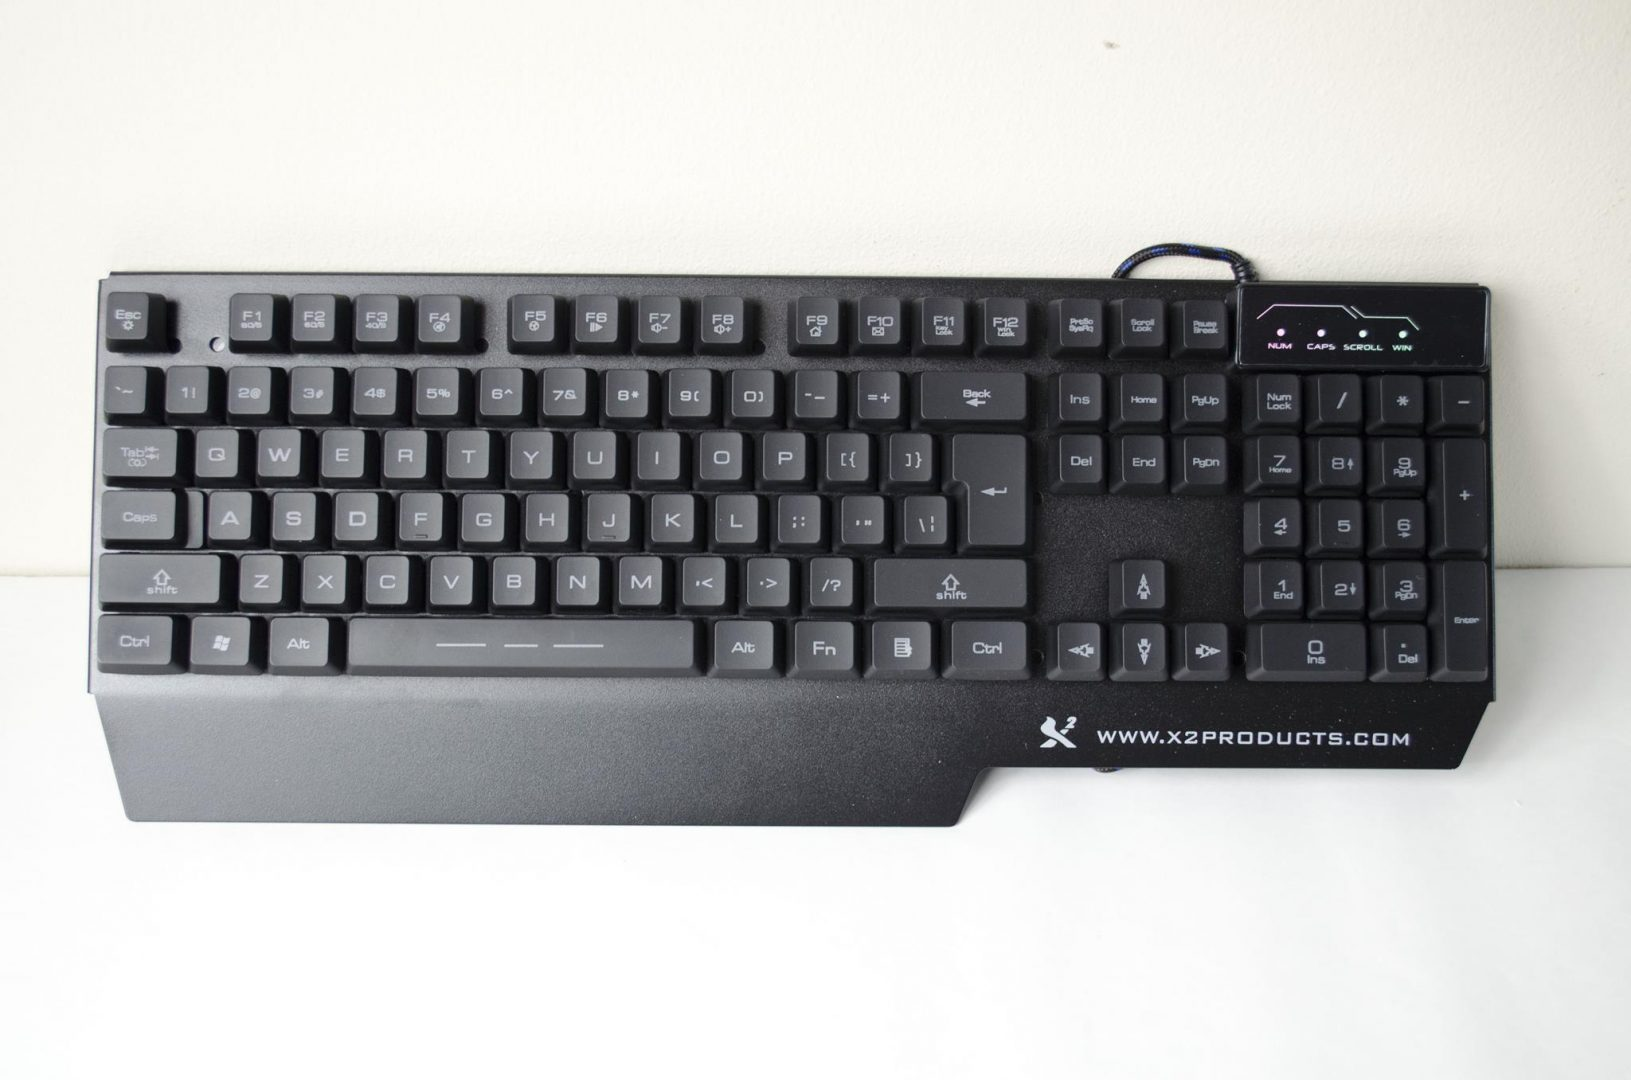 x2 mirage gaming keyboard review_1